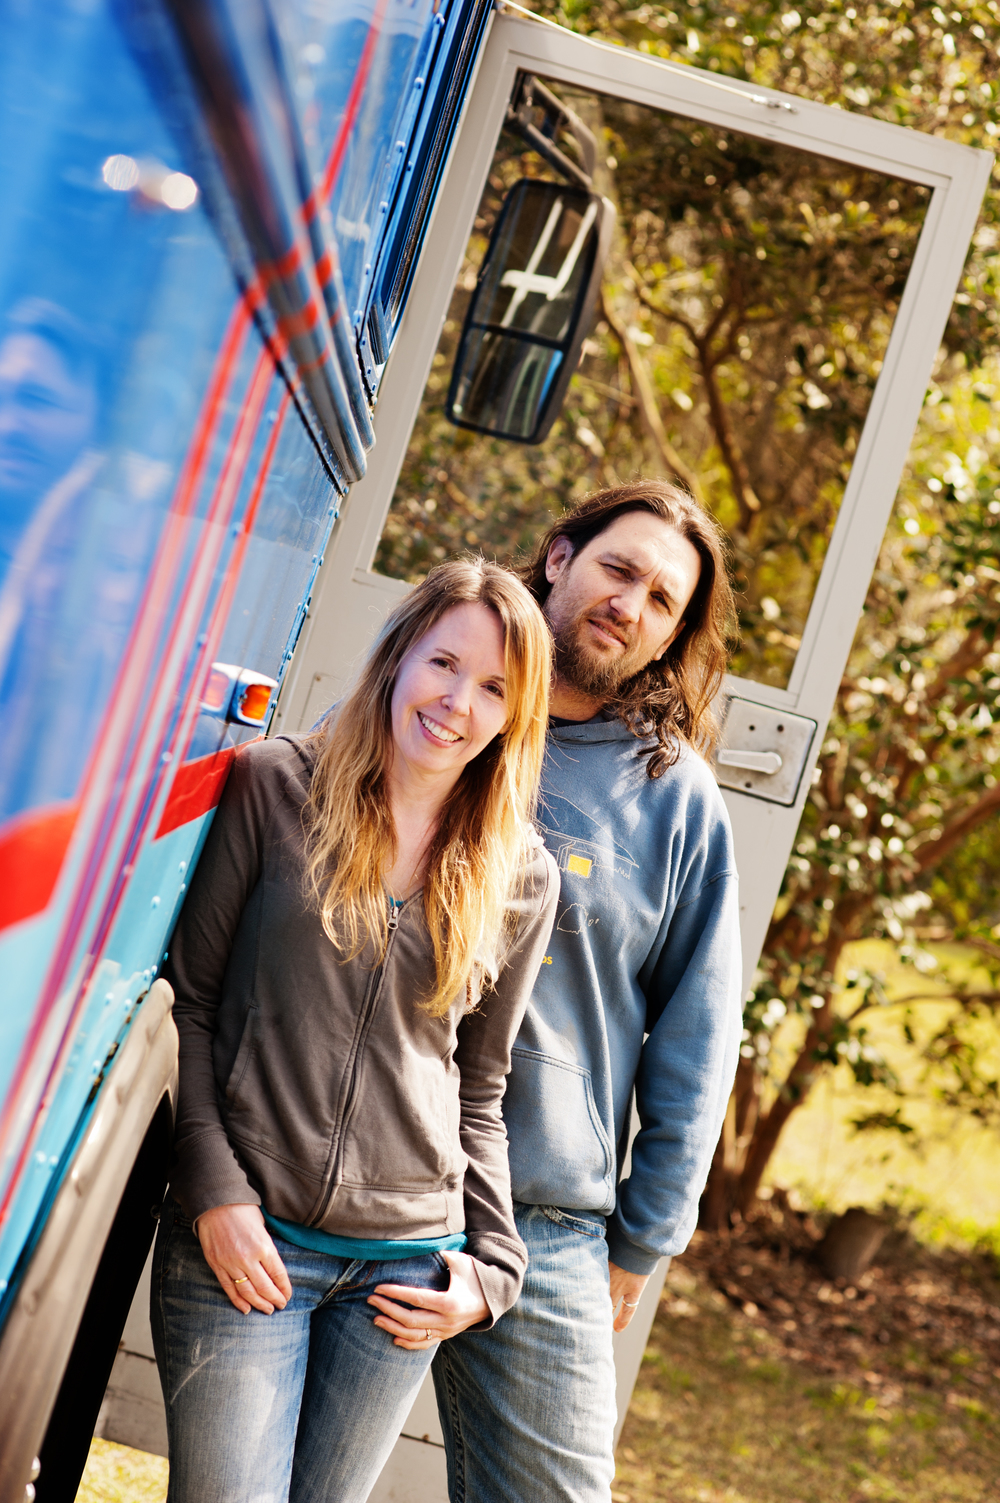 Jeff & Kelly Halldorson of The Unschool Bus  Tampa Birth Photographer, Midwife, Florida Midwife, Tampa Midwife, Brandon Midwife, Tampa Newborn photography, tampa maternity photography, brandon photography, brandon newborn photography, breastfeeding, tampa breastfeeding, tampa placenta encapsulation, tampa homebirth, homebirth, brandon home birth, brandon homebirth, tampa home birth, st pete homebirth, st pete home birth, tampa birth center, st pete birth center, prenatal massage tampa, tampa massage therapist, tampa craniosacral therapy, tampa doula, brandon doula, brandon postpartum doula, tampa full spectrum support, sweet child o mine, kim verbarg, labor of love, licensed midwife tampa, midwife st pete, licensed midwife st pete, holistic midwife, holistic maternity care, prenatal care tampa, prenatal care st pete, free birth tampa, crunchy mom, natural birth tampa, gentle csection, gentle cesarean, gentle cesarean tampa, gentle cesarean st pete, gentle cesarean pinellas